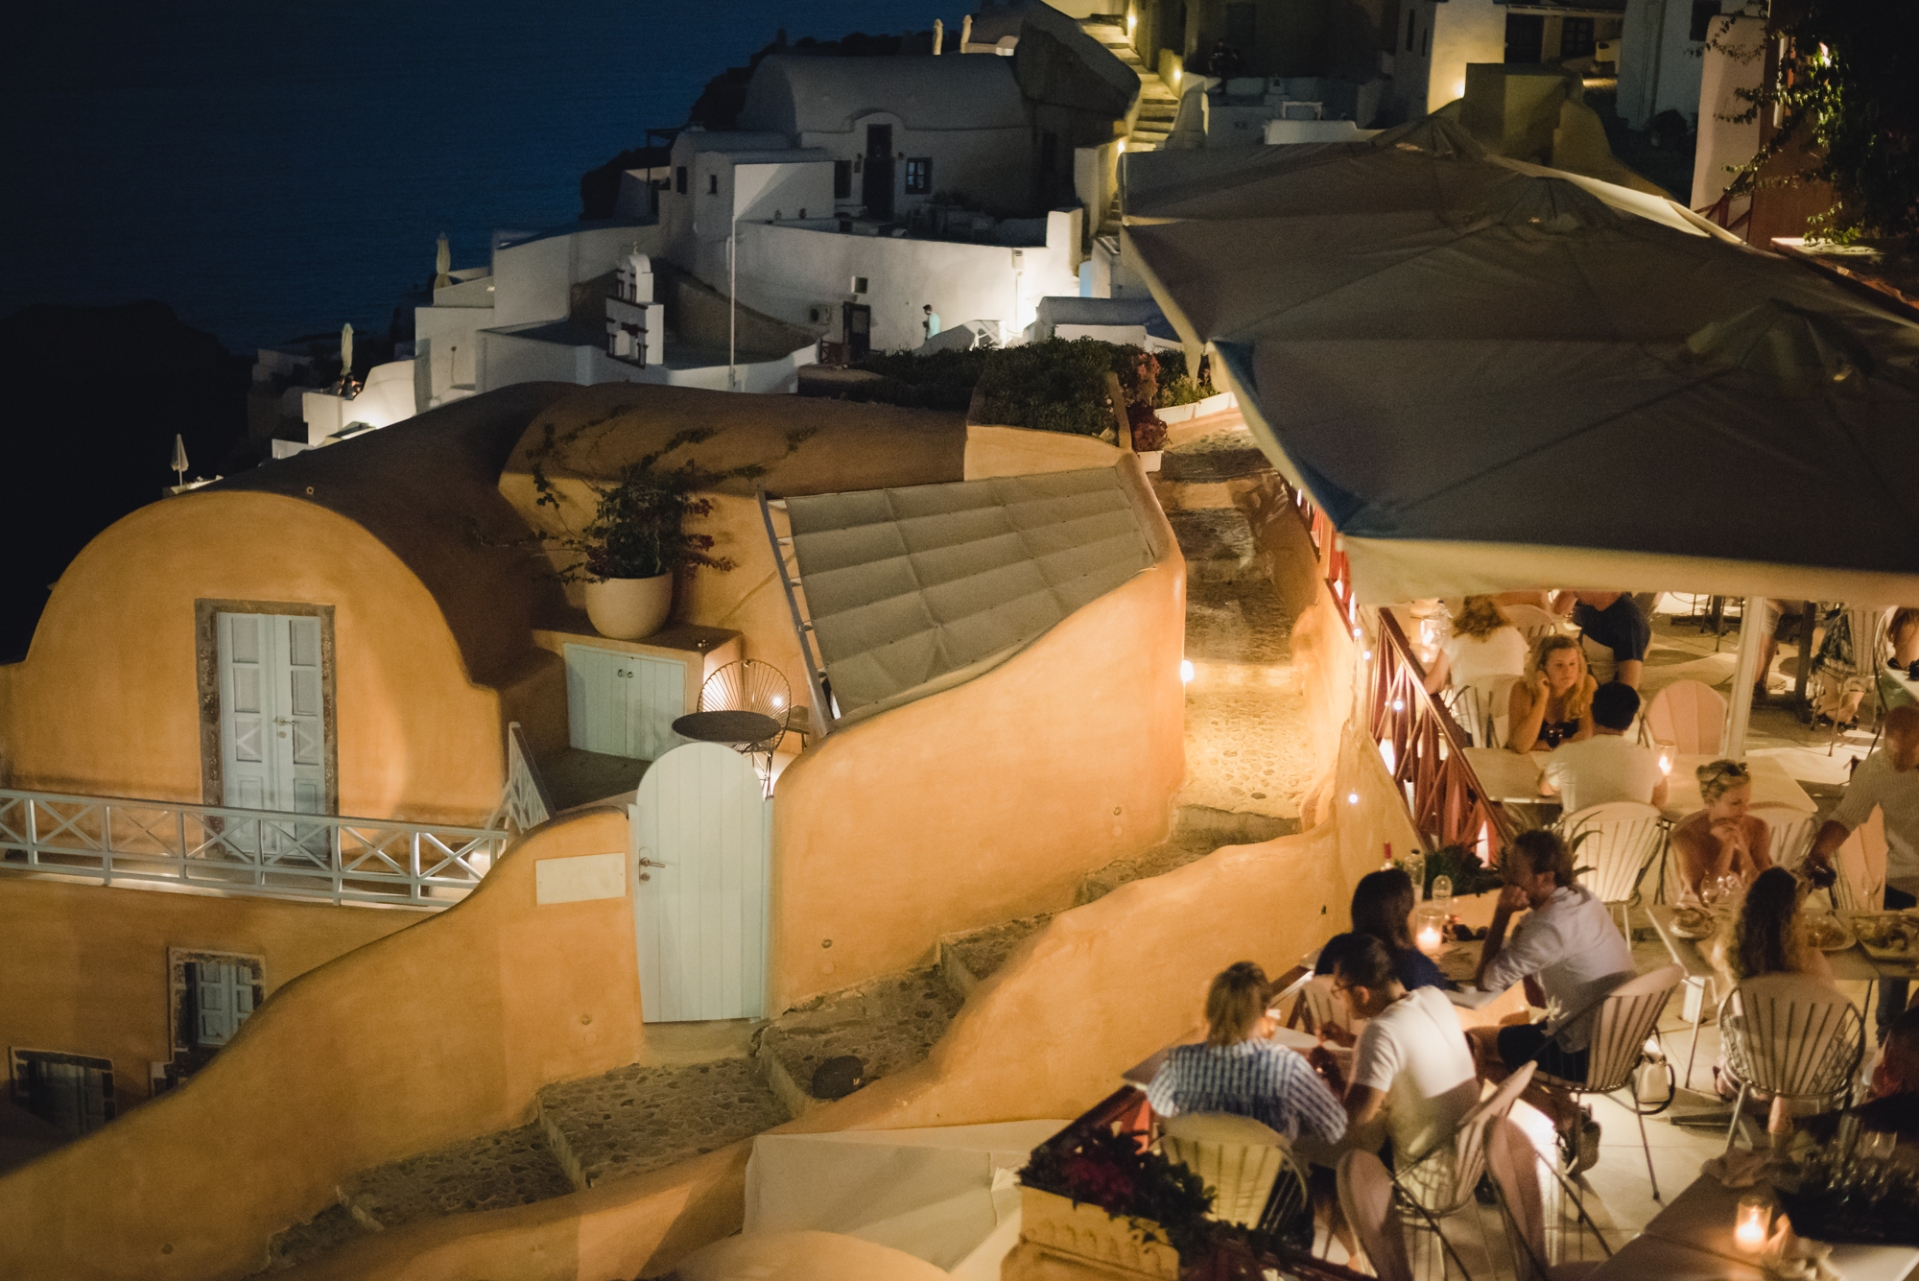 Restaurant in Santorini, Oia. People enjoining their meal at twilight.